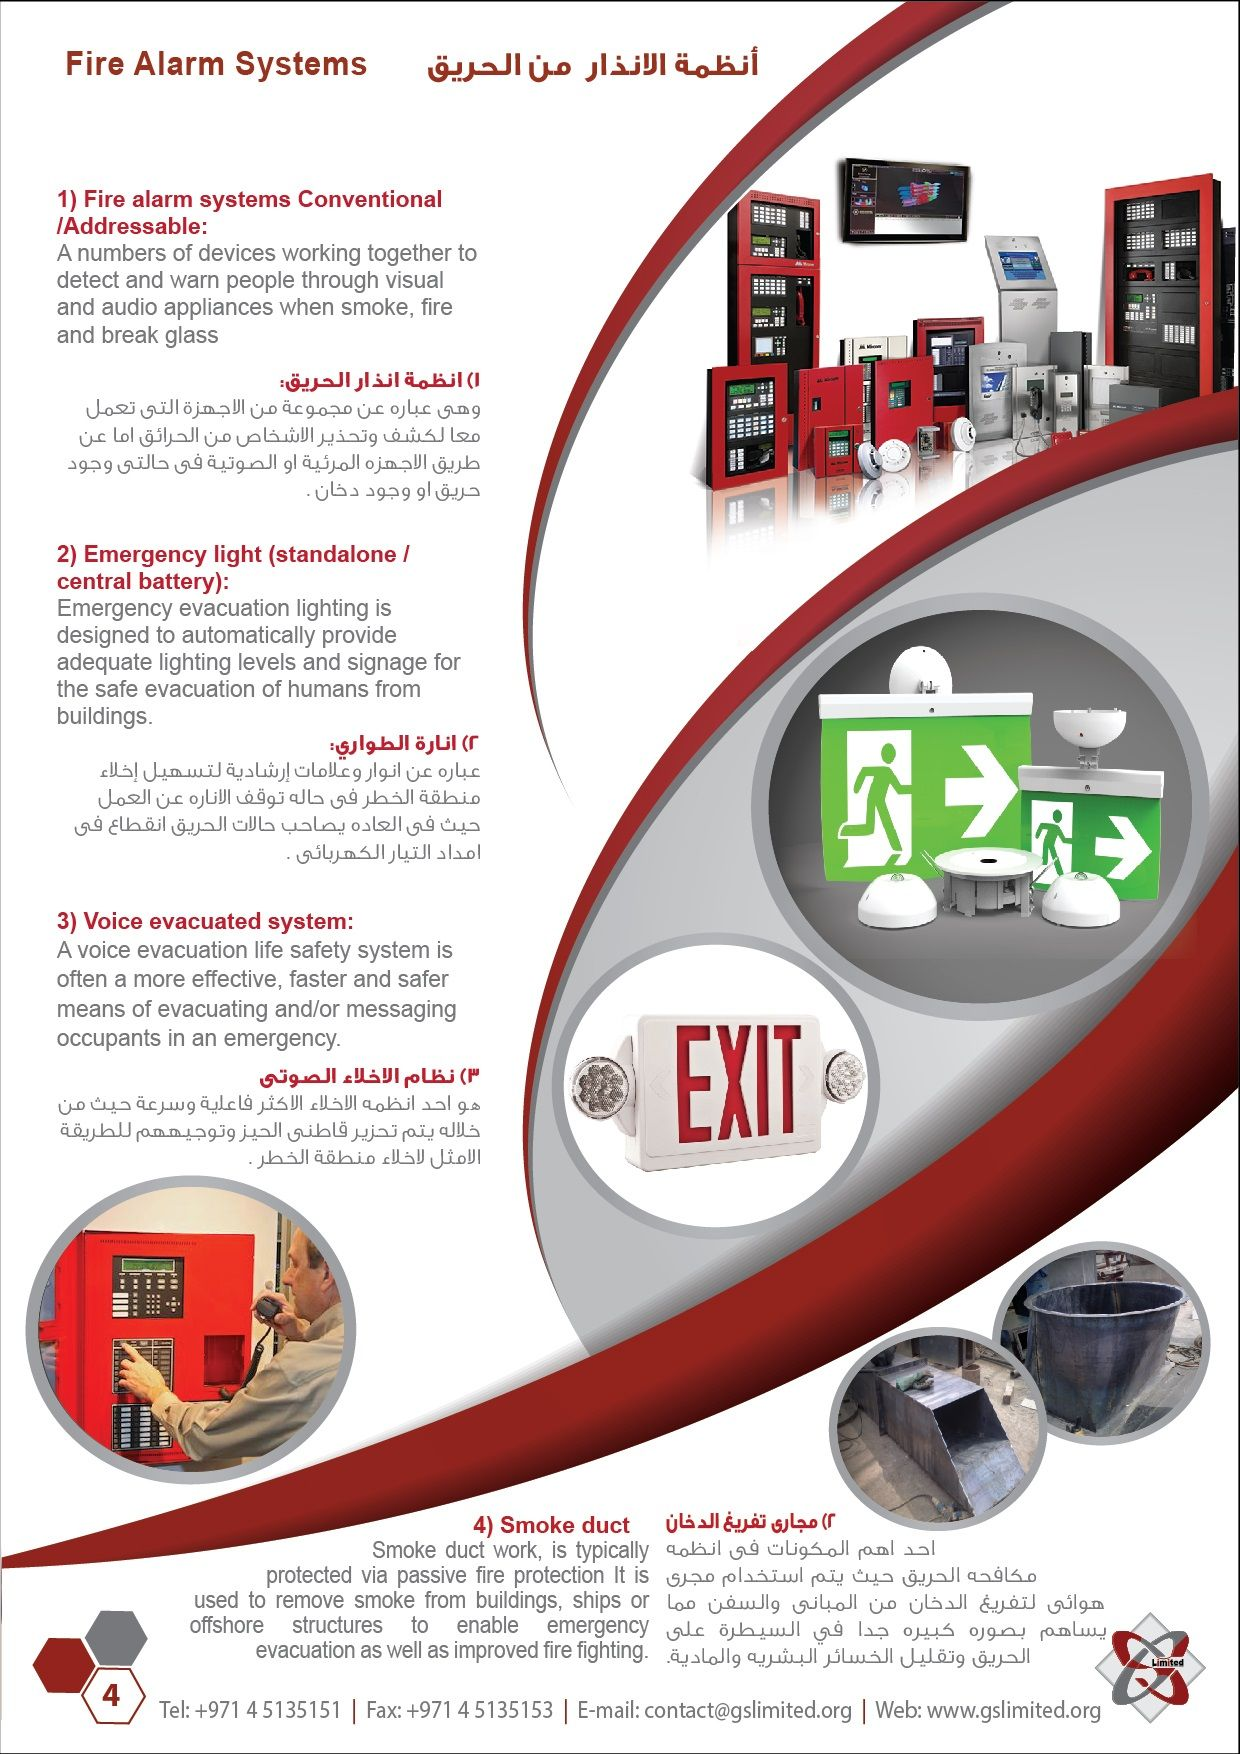 hight resolution of fire alarm systems golden shield company provides full solution in fire detection and firefighting including system